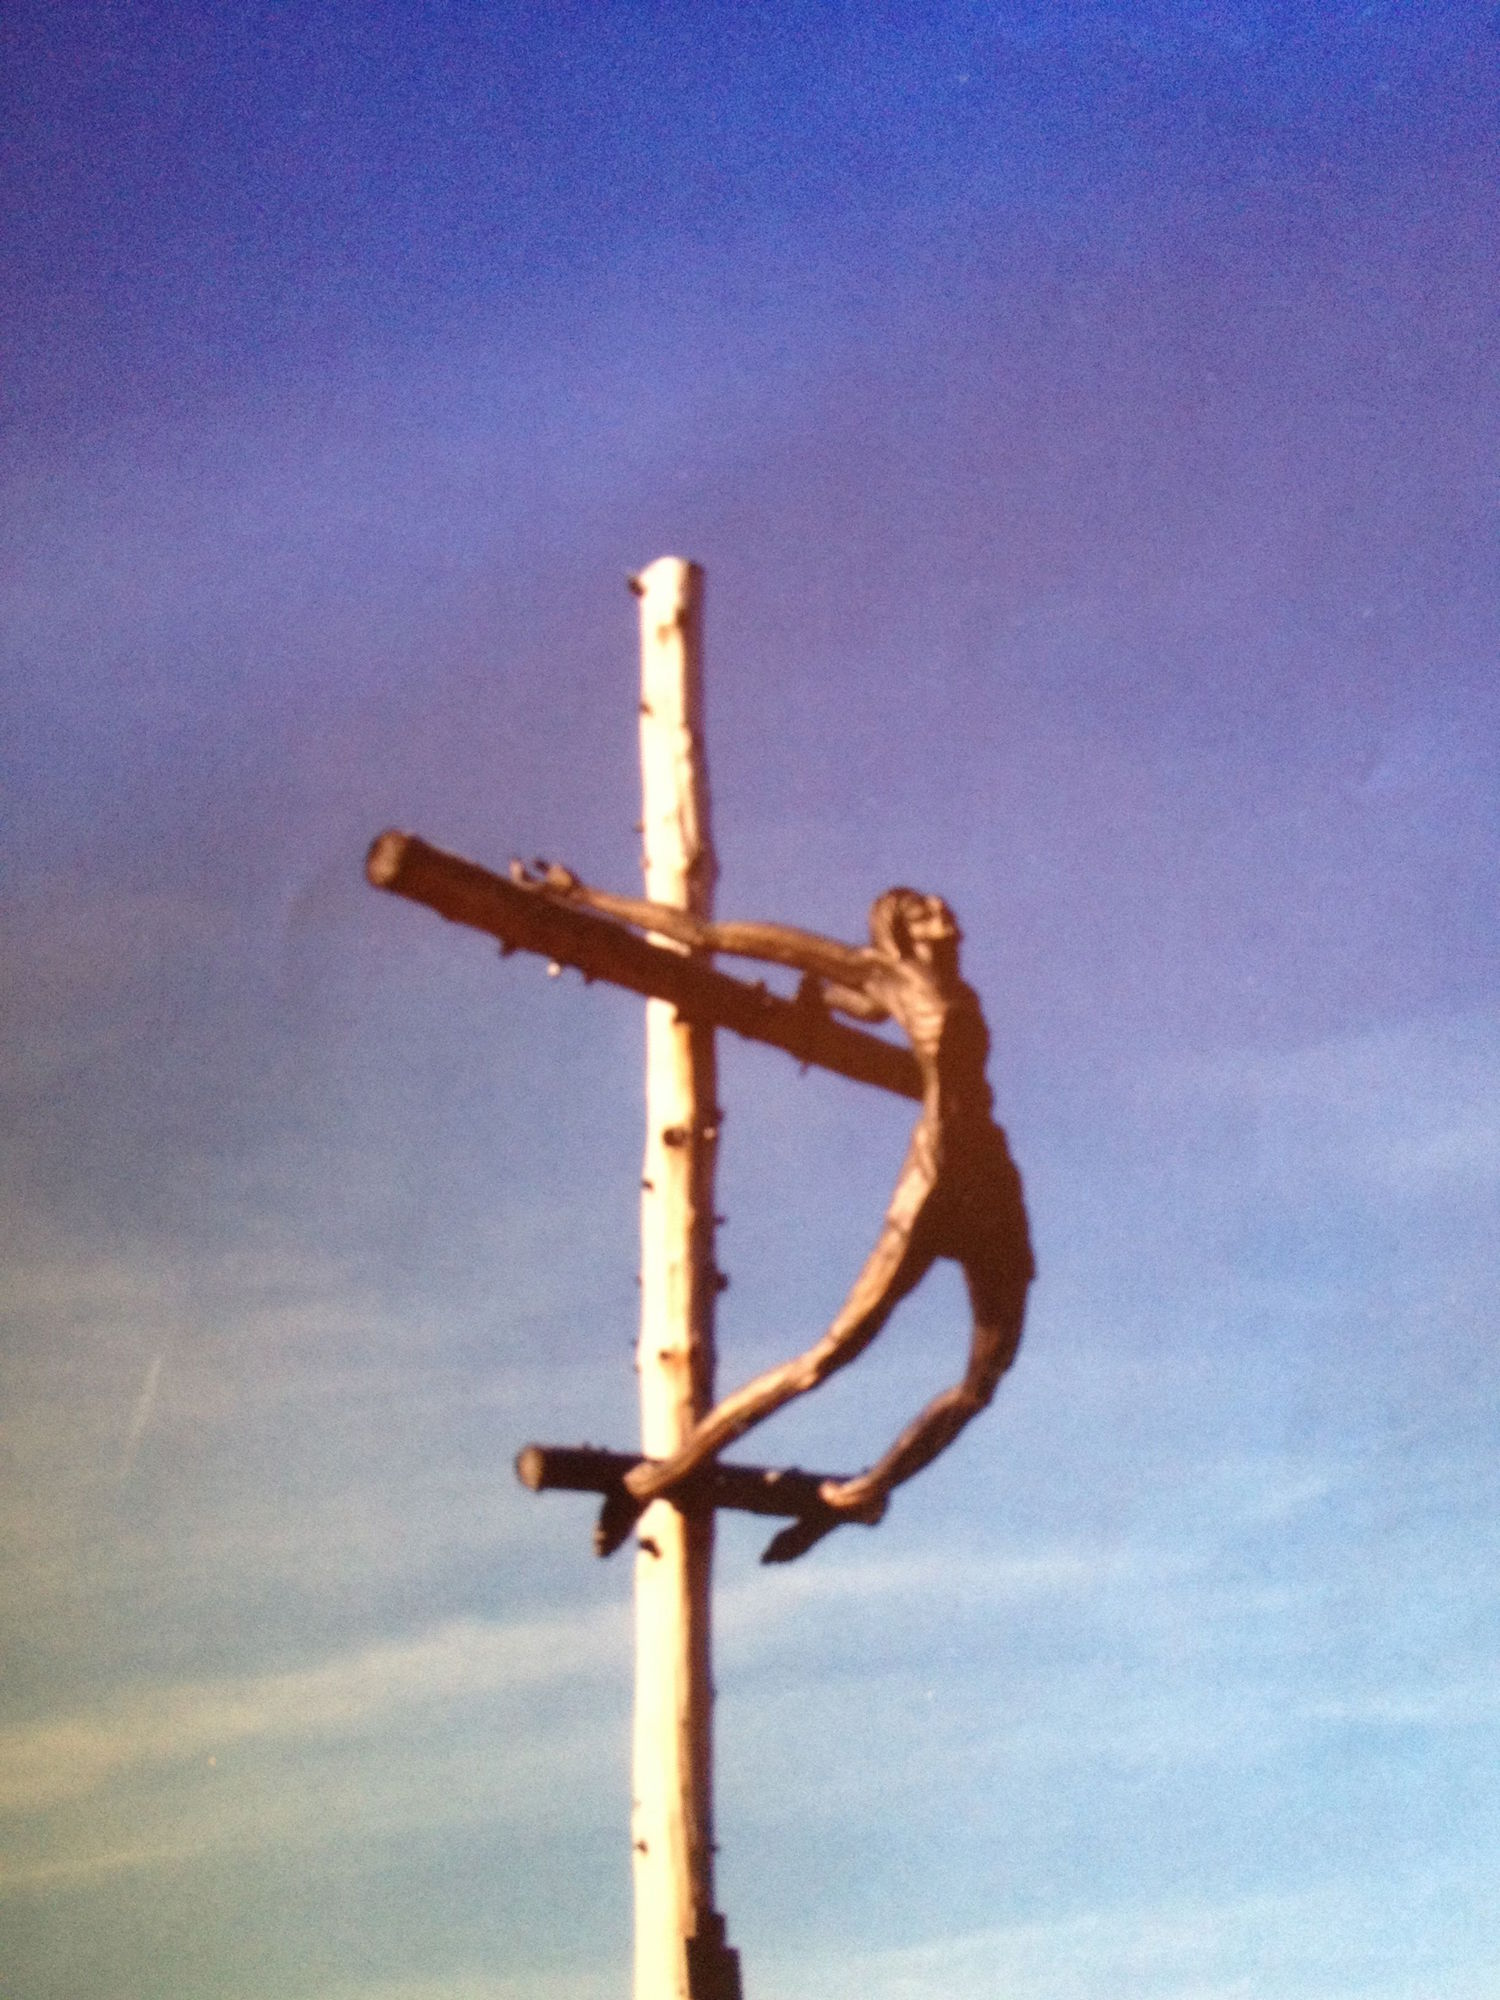 Statue on a pass we skied over in Italy.  -